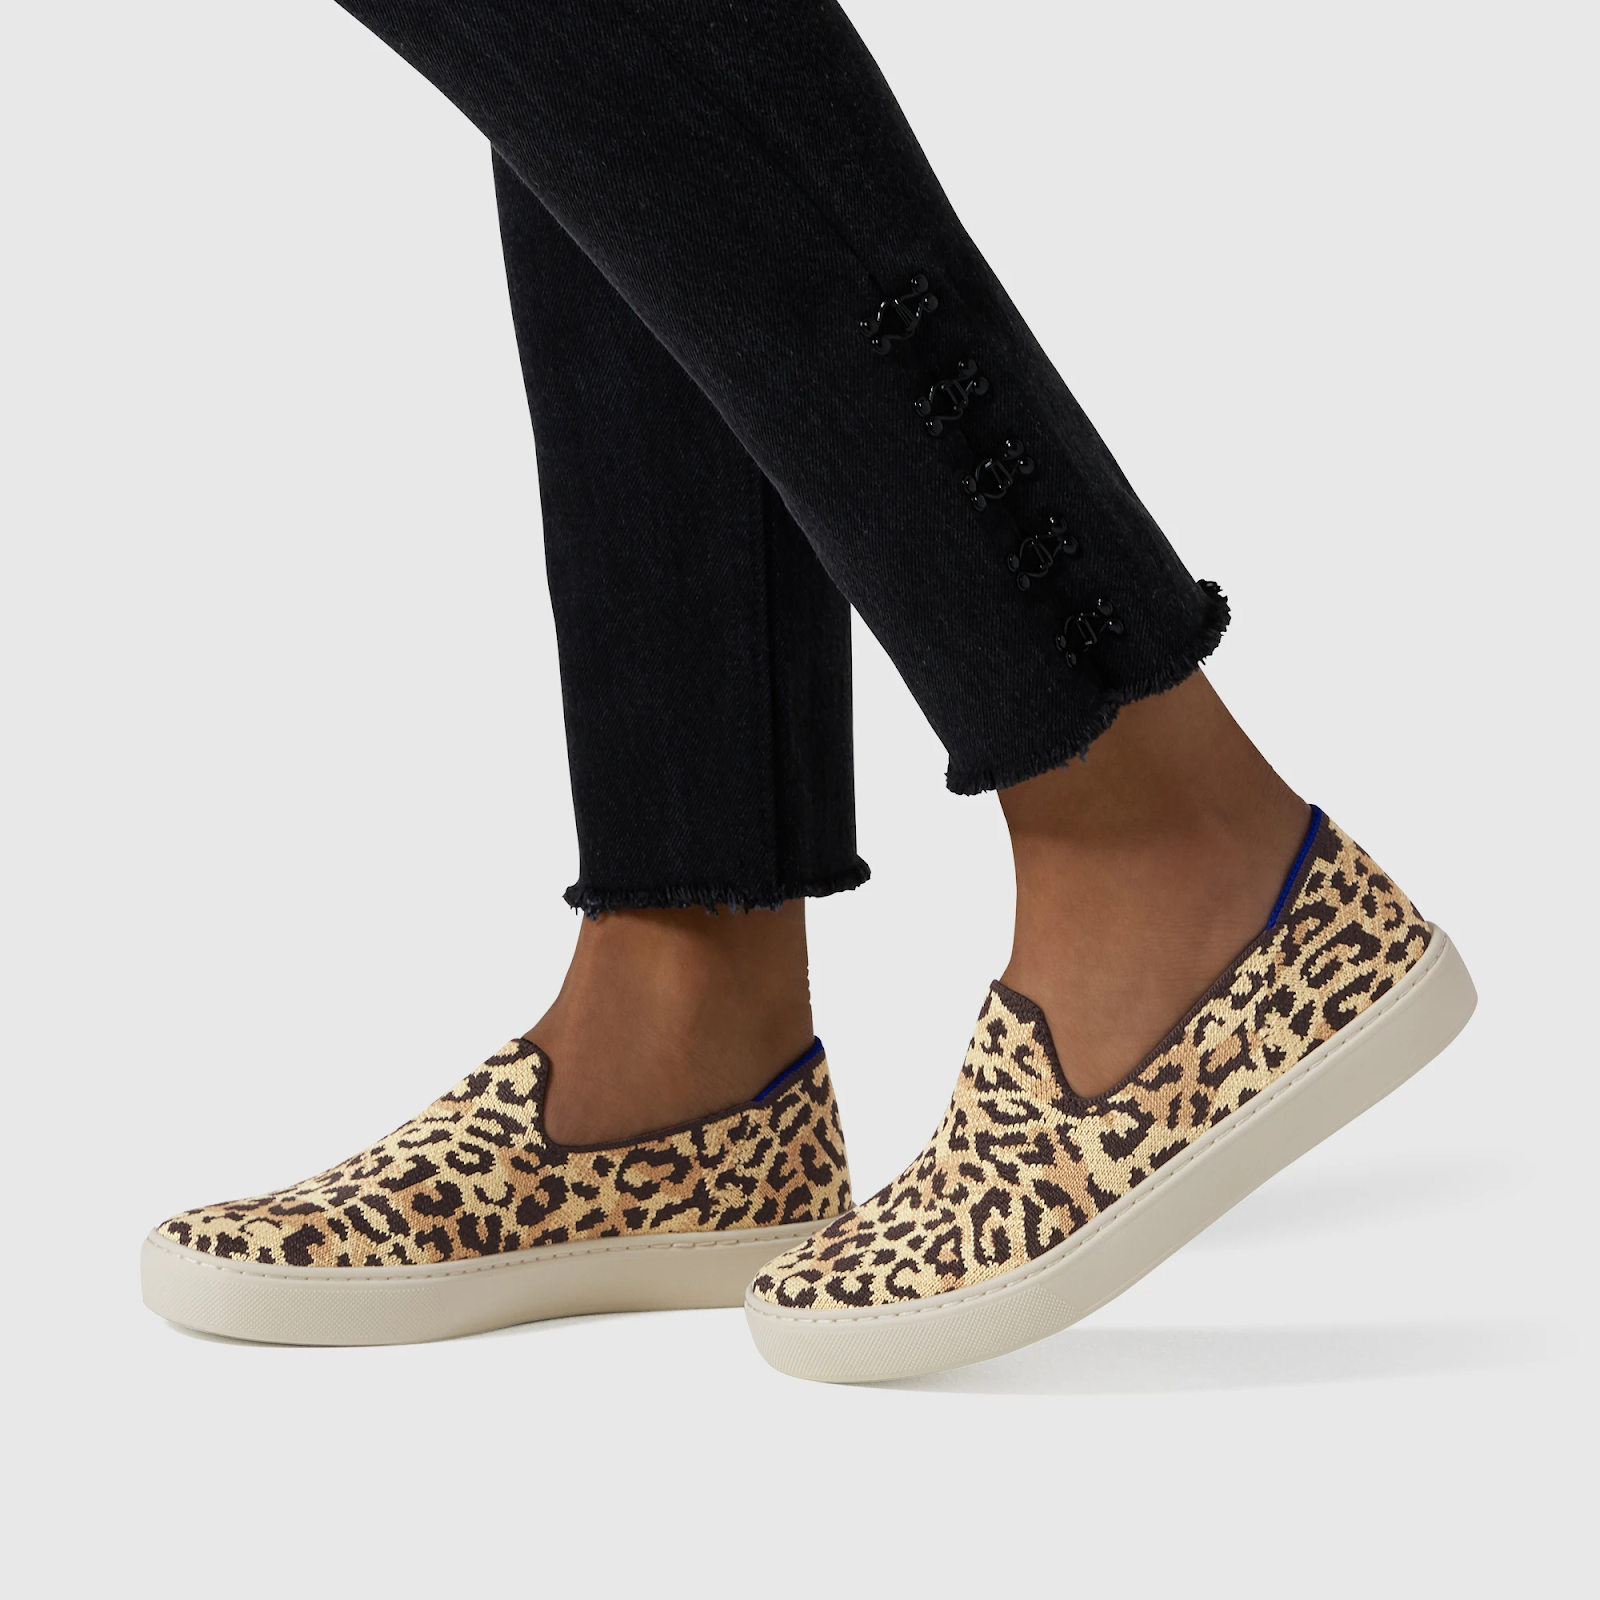 Rothys vs Everlane Shoes Review 1